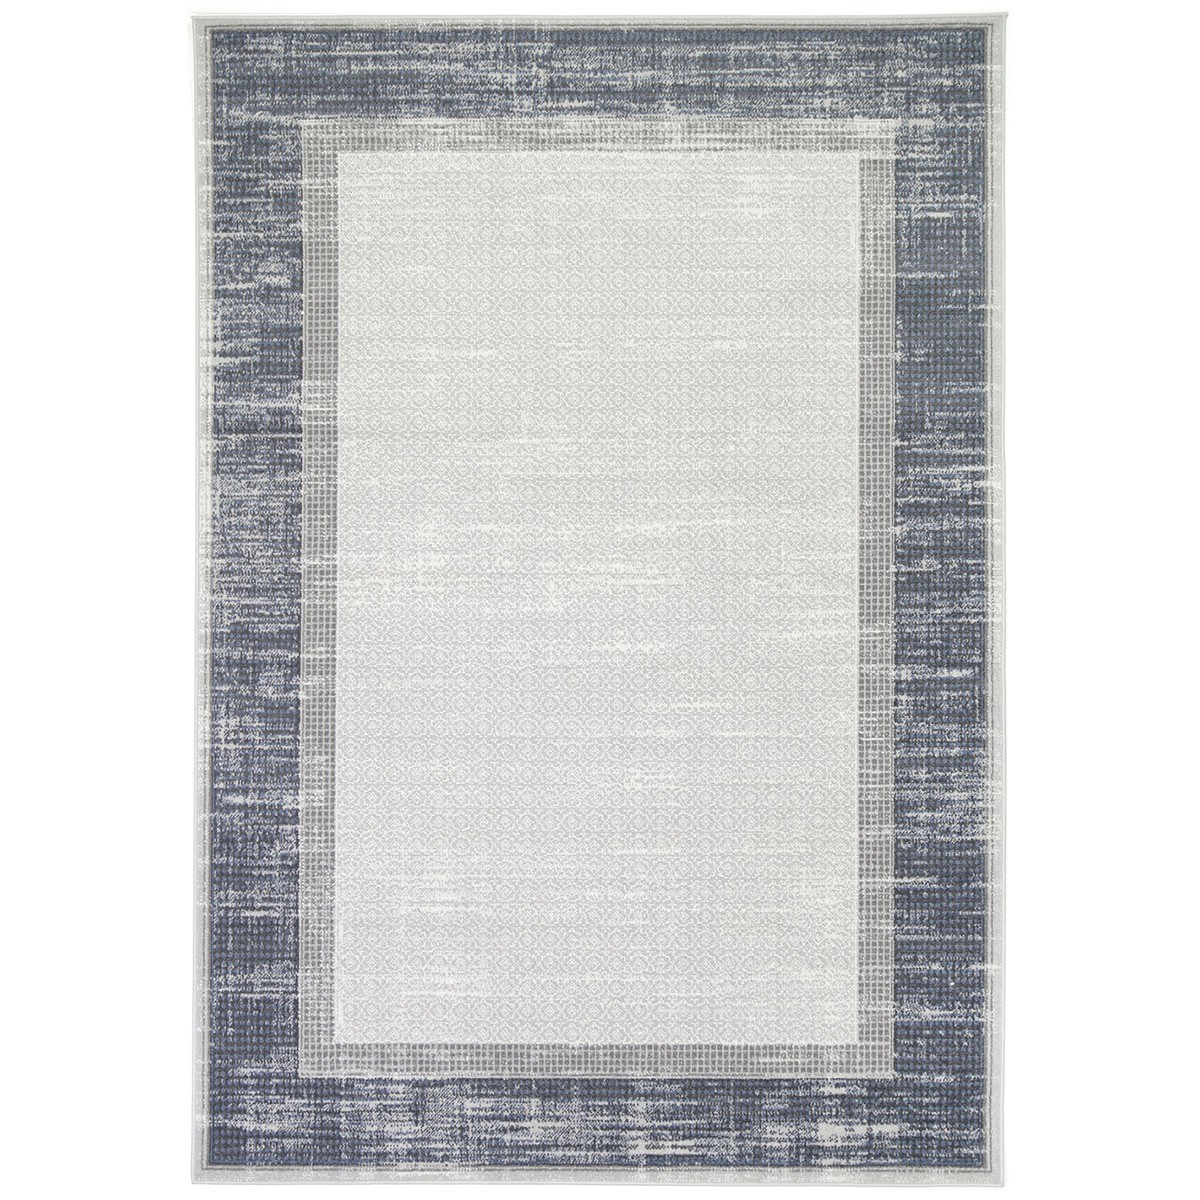 Courtyard New York Modern Rug, 290x200cm, Grey / Blue